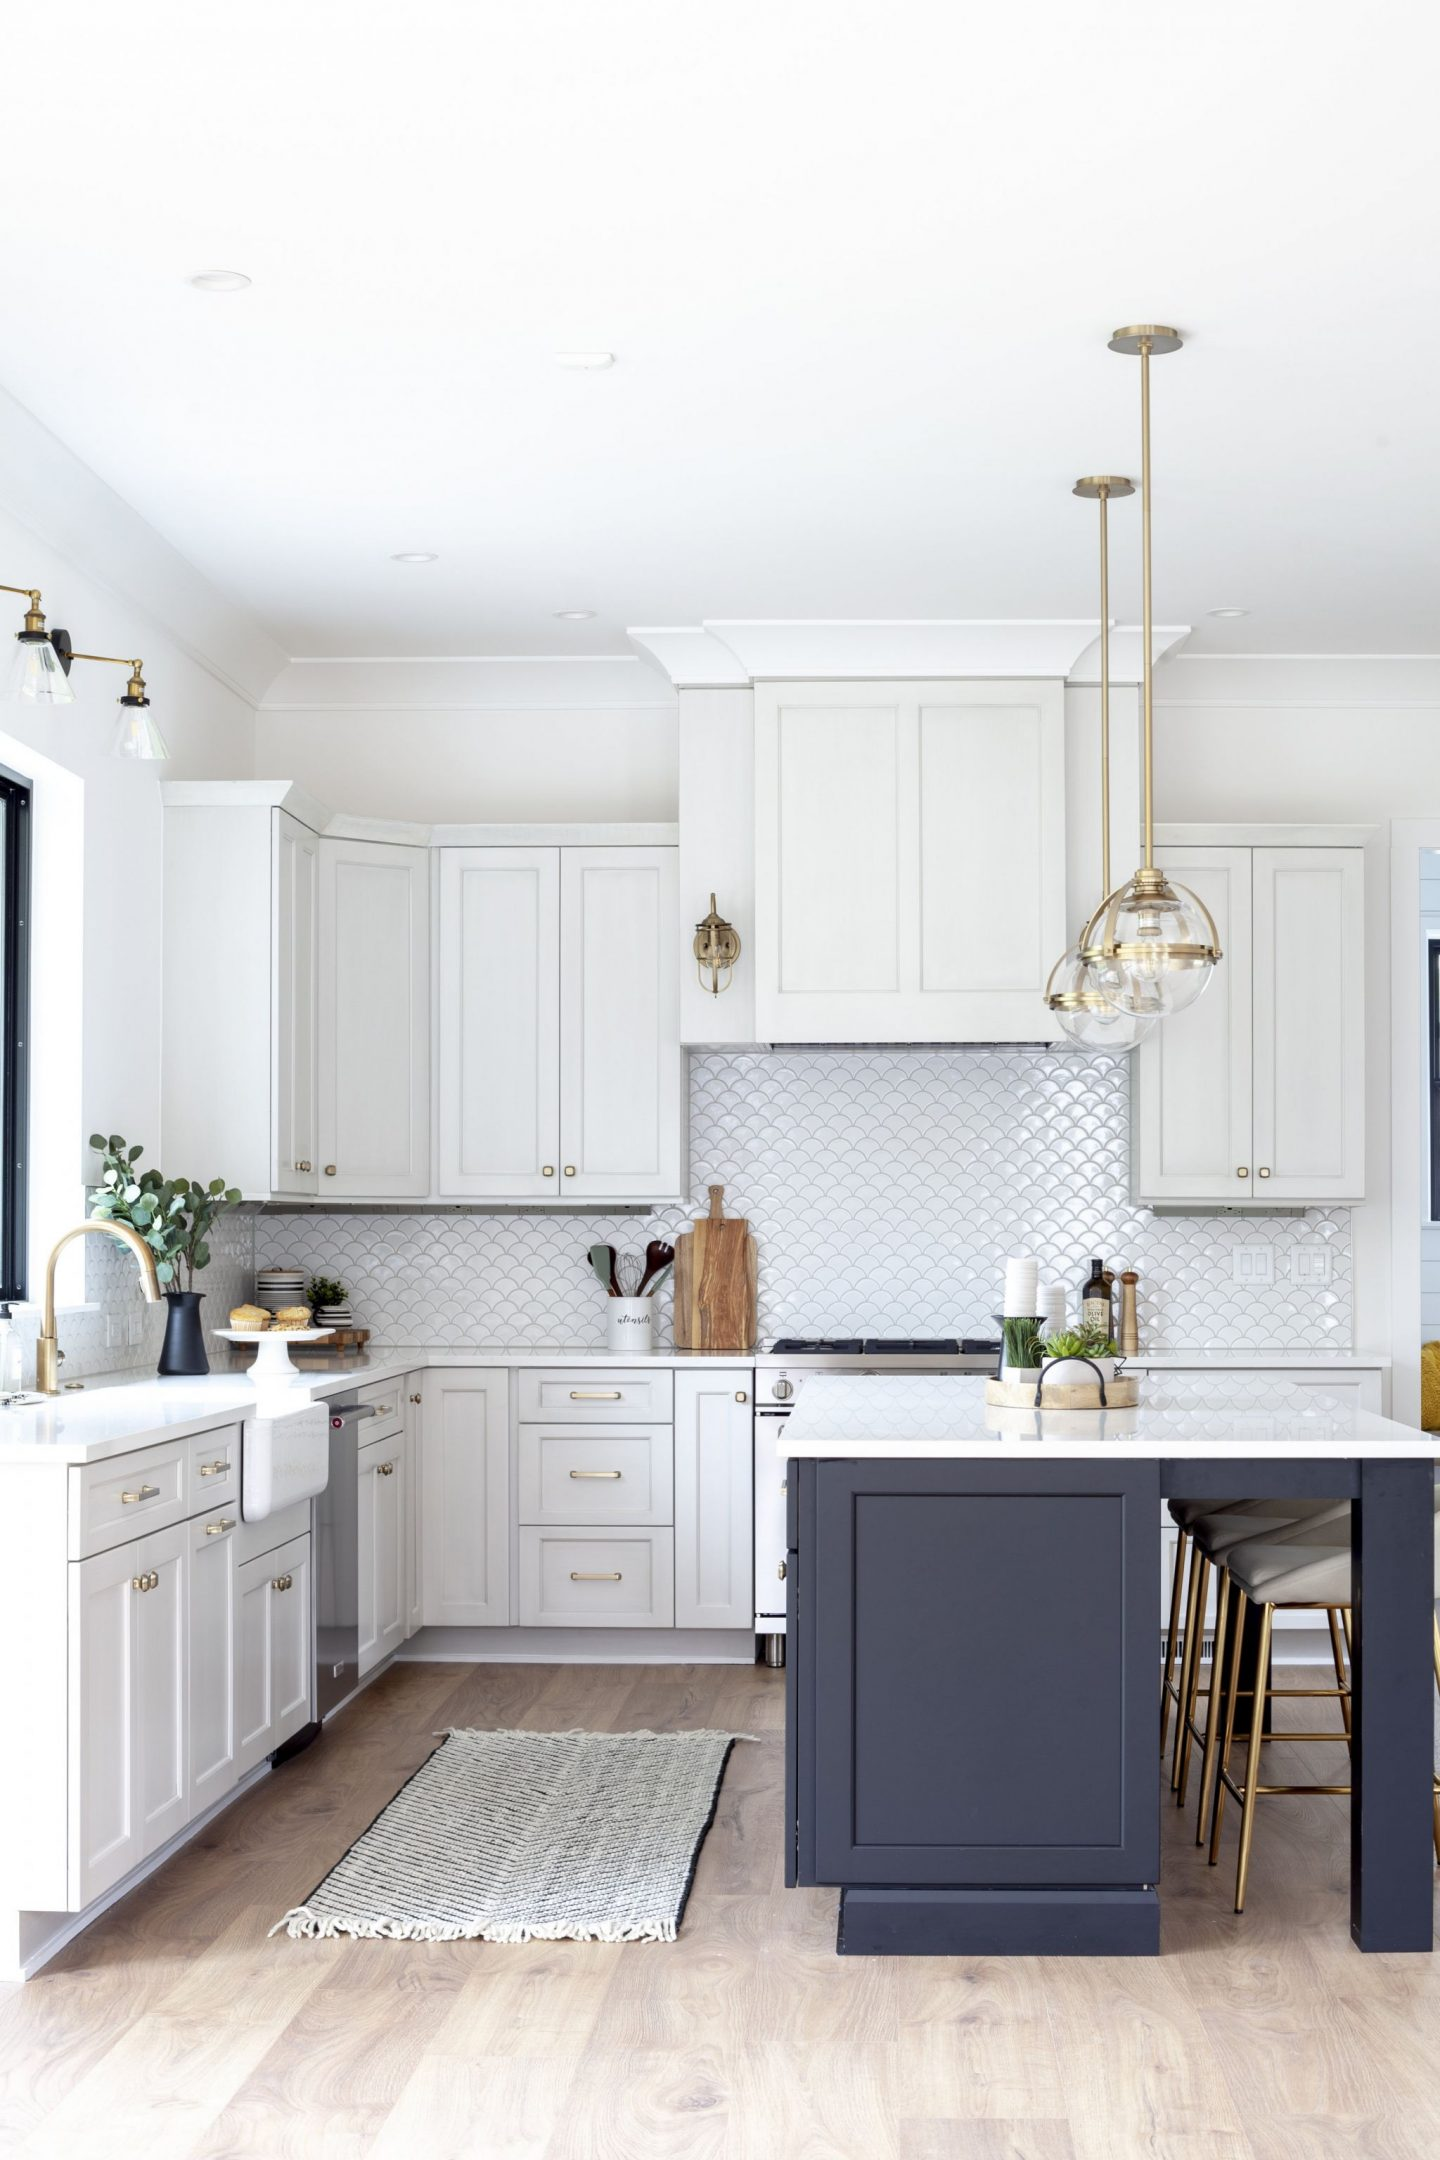 luxury kitchen - modern farmhouse - Chelsea building Group - Schwaiger Realty Group